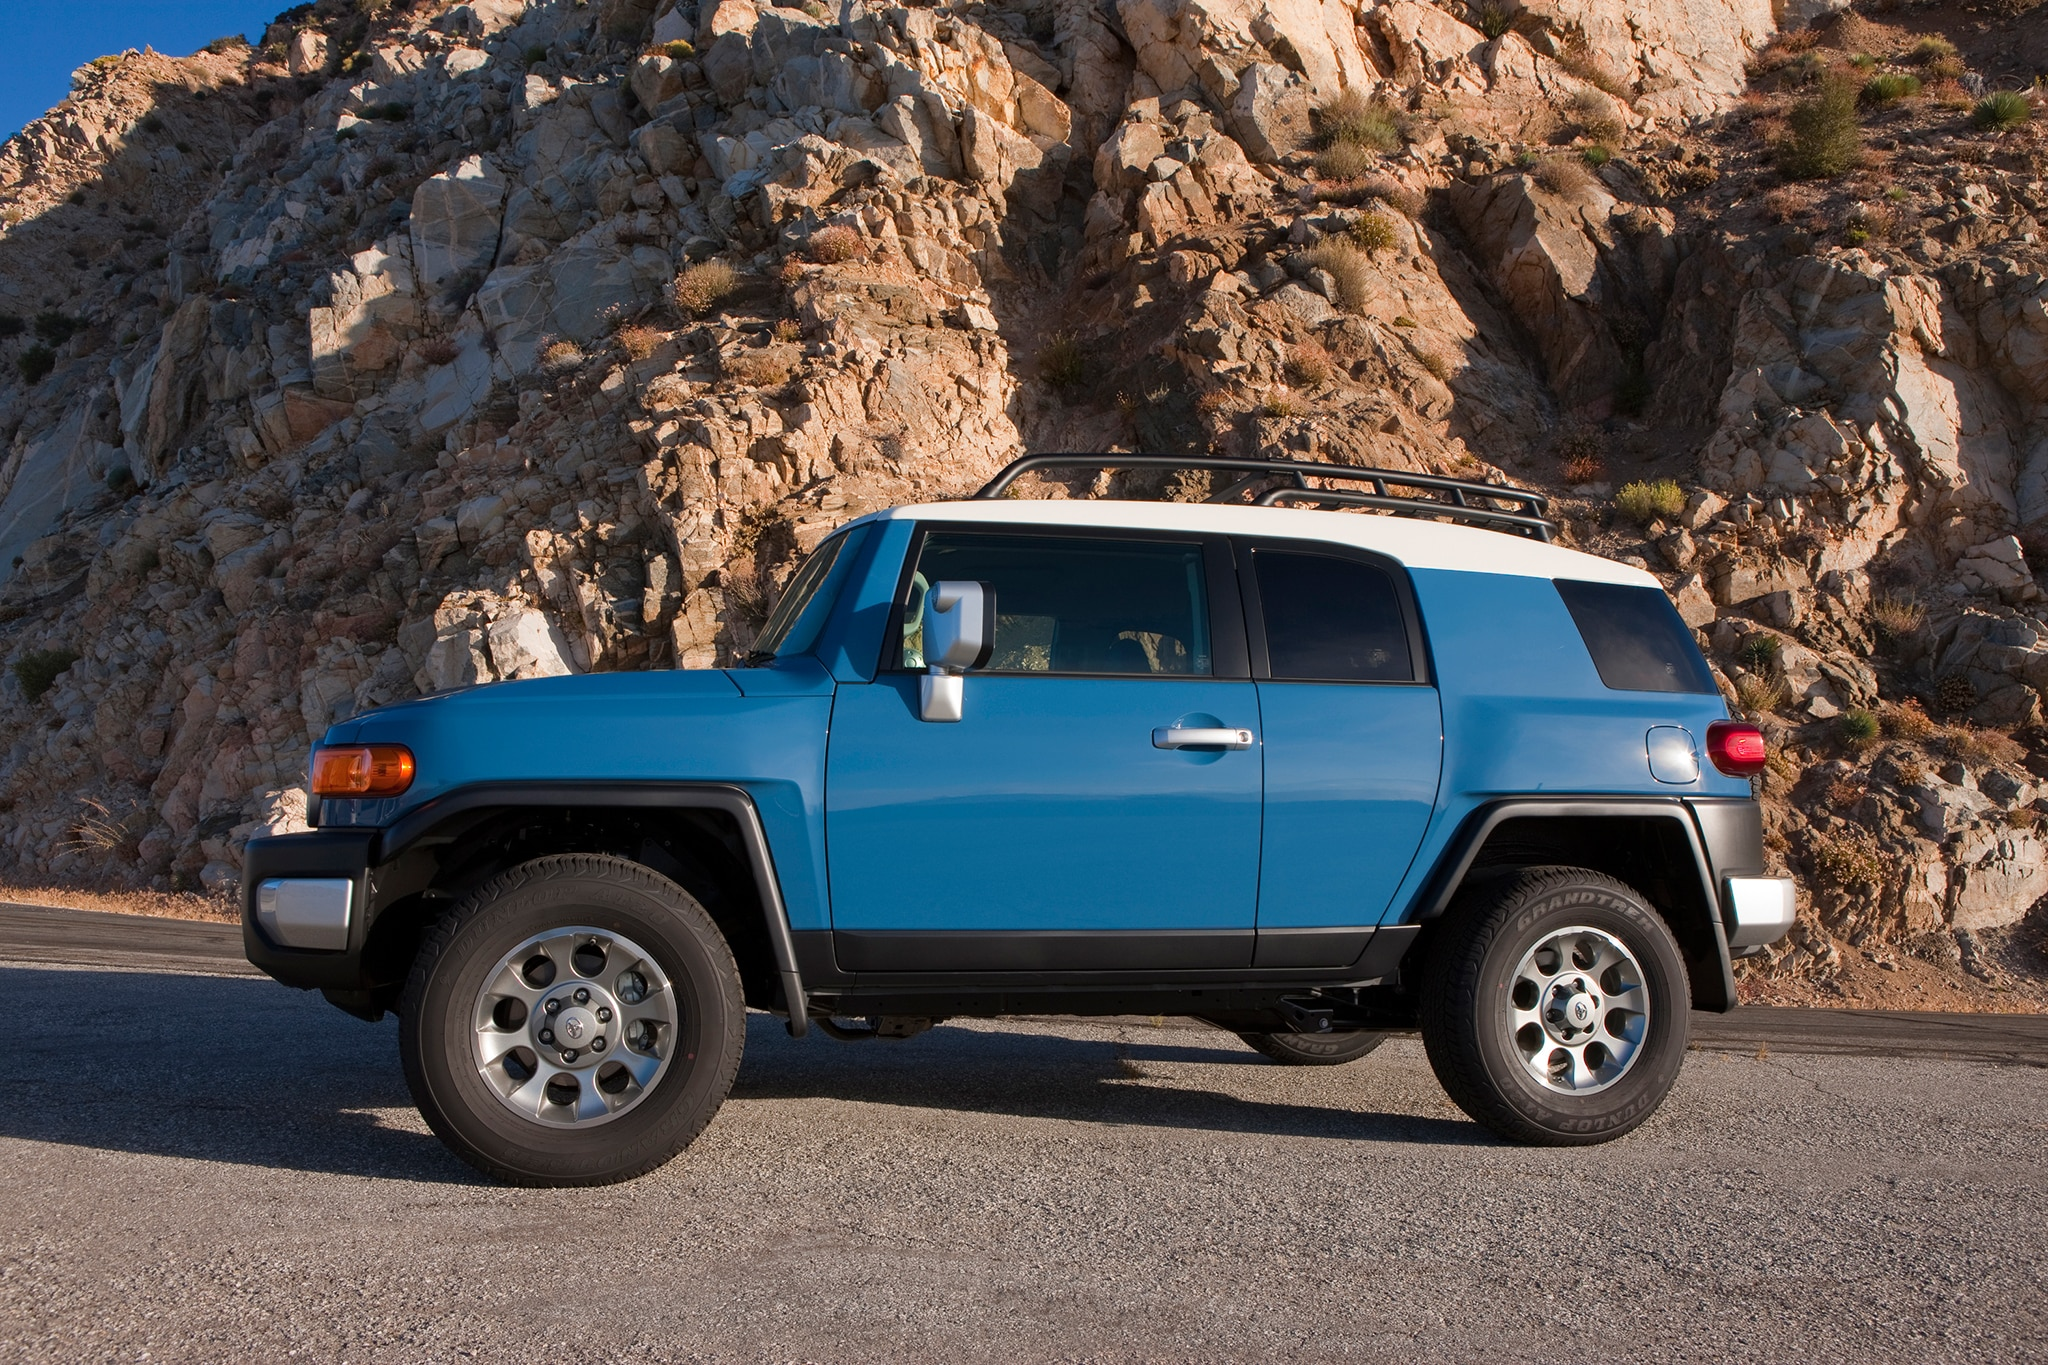 The Fj Company Sport Offers Classic Toyota Land Cruisers For 1973 Cruiser Specs 2013 38 250